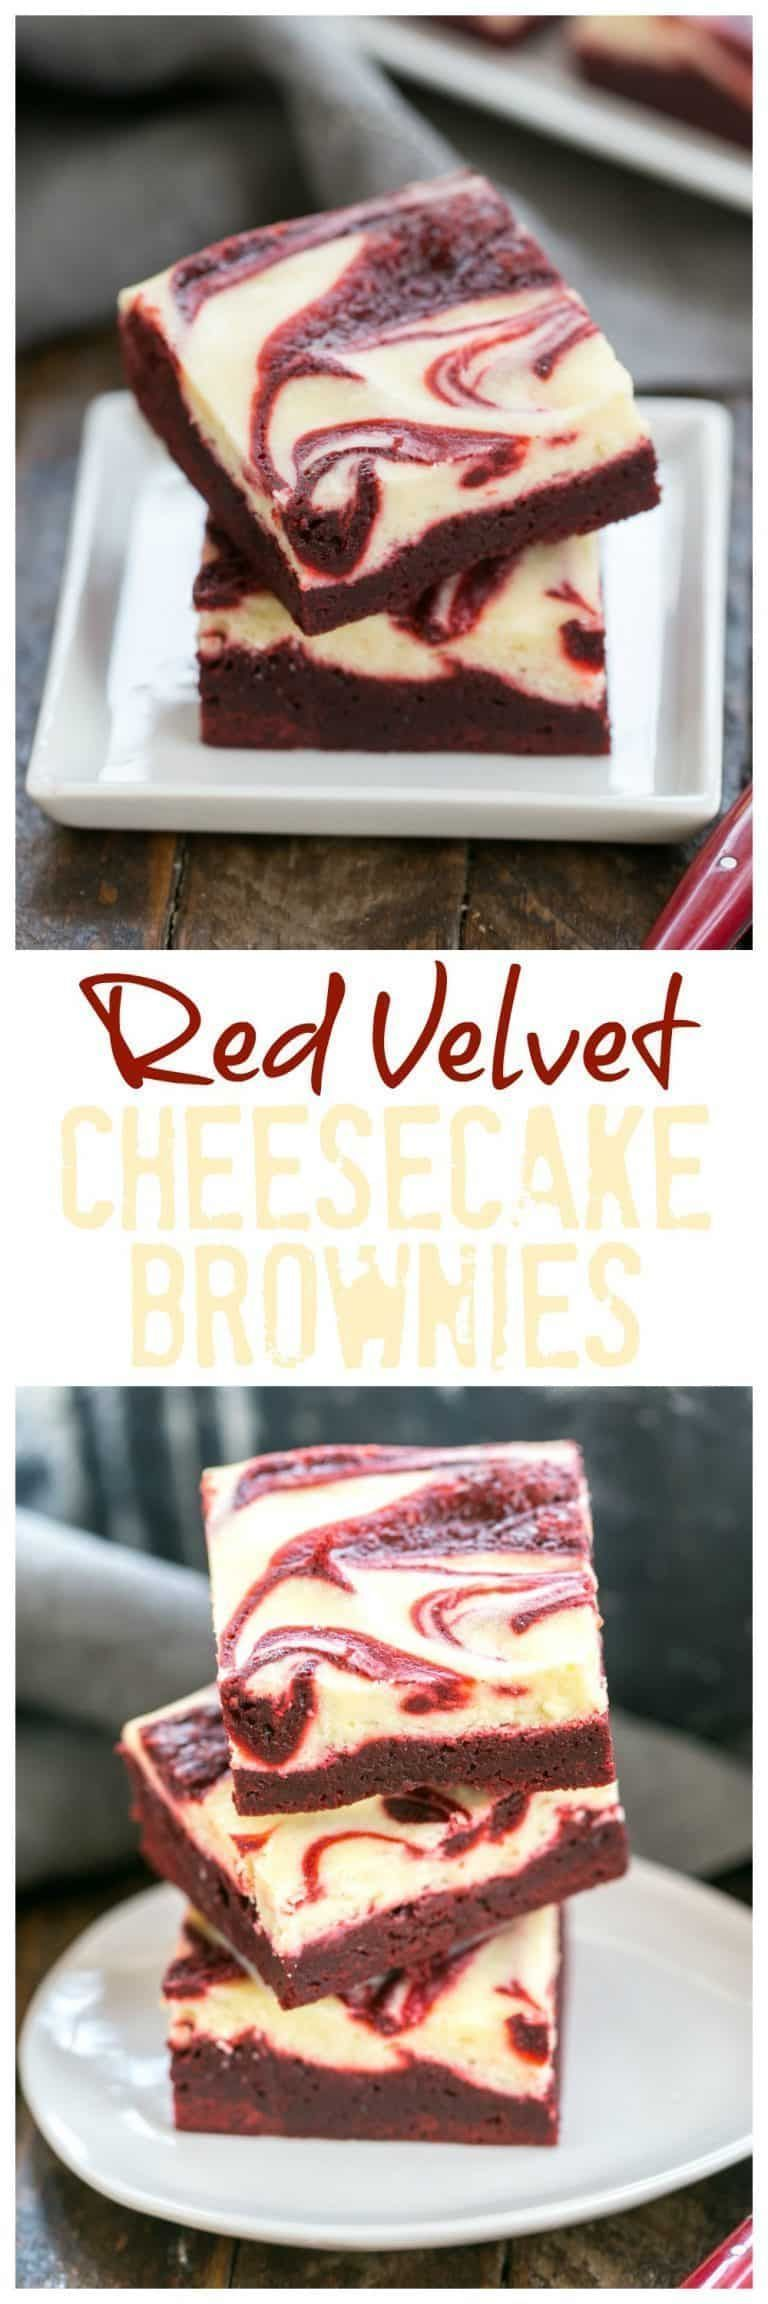 Red Velvet Cheesecake Brownies | Layered red velvet brownies with a cheesecake topping and red velvet swirl! #desserts #cheesecake #brownies #holidays #redvelvetcheesecake Red Velvet Cheesecake Brownies | Layered red velvet brownies with a cheesecake topping and red velvet swirl! #desserts #cheesecake #brownies #holidays #redvelvetcheesecake Red Velvet Cheesecake Brownies | Layered red velvet brownies with a cheesecake topping and red velvet swirl! #desserts #cheesecake #brownies #holidays #redv #redvelvetcheesecake